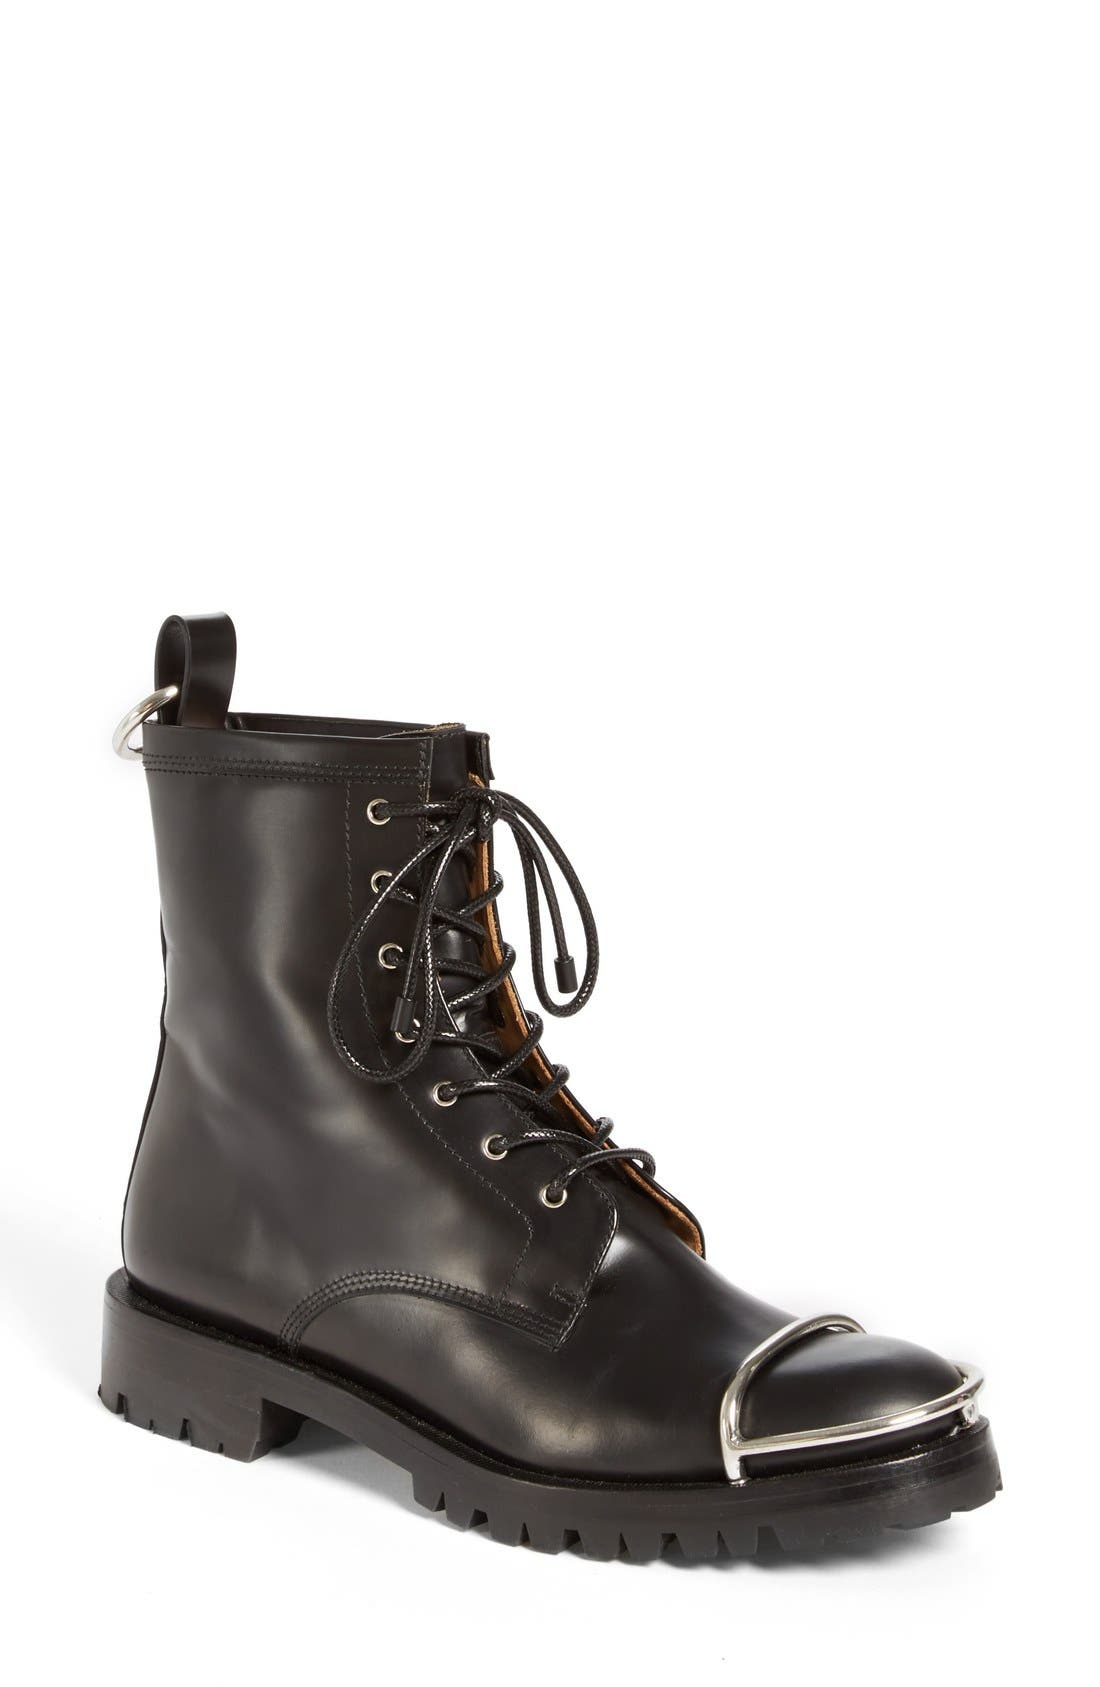 Main Image - Alexander Wang 'Lyndon' Military Boot (Women)